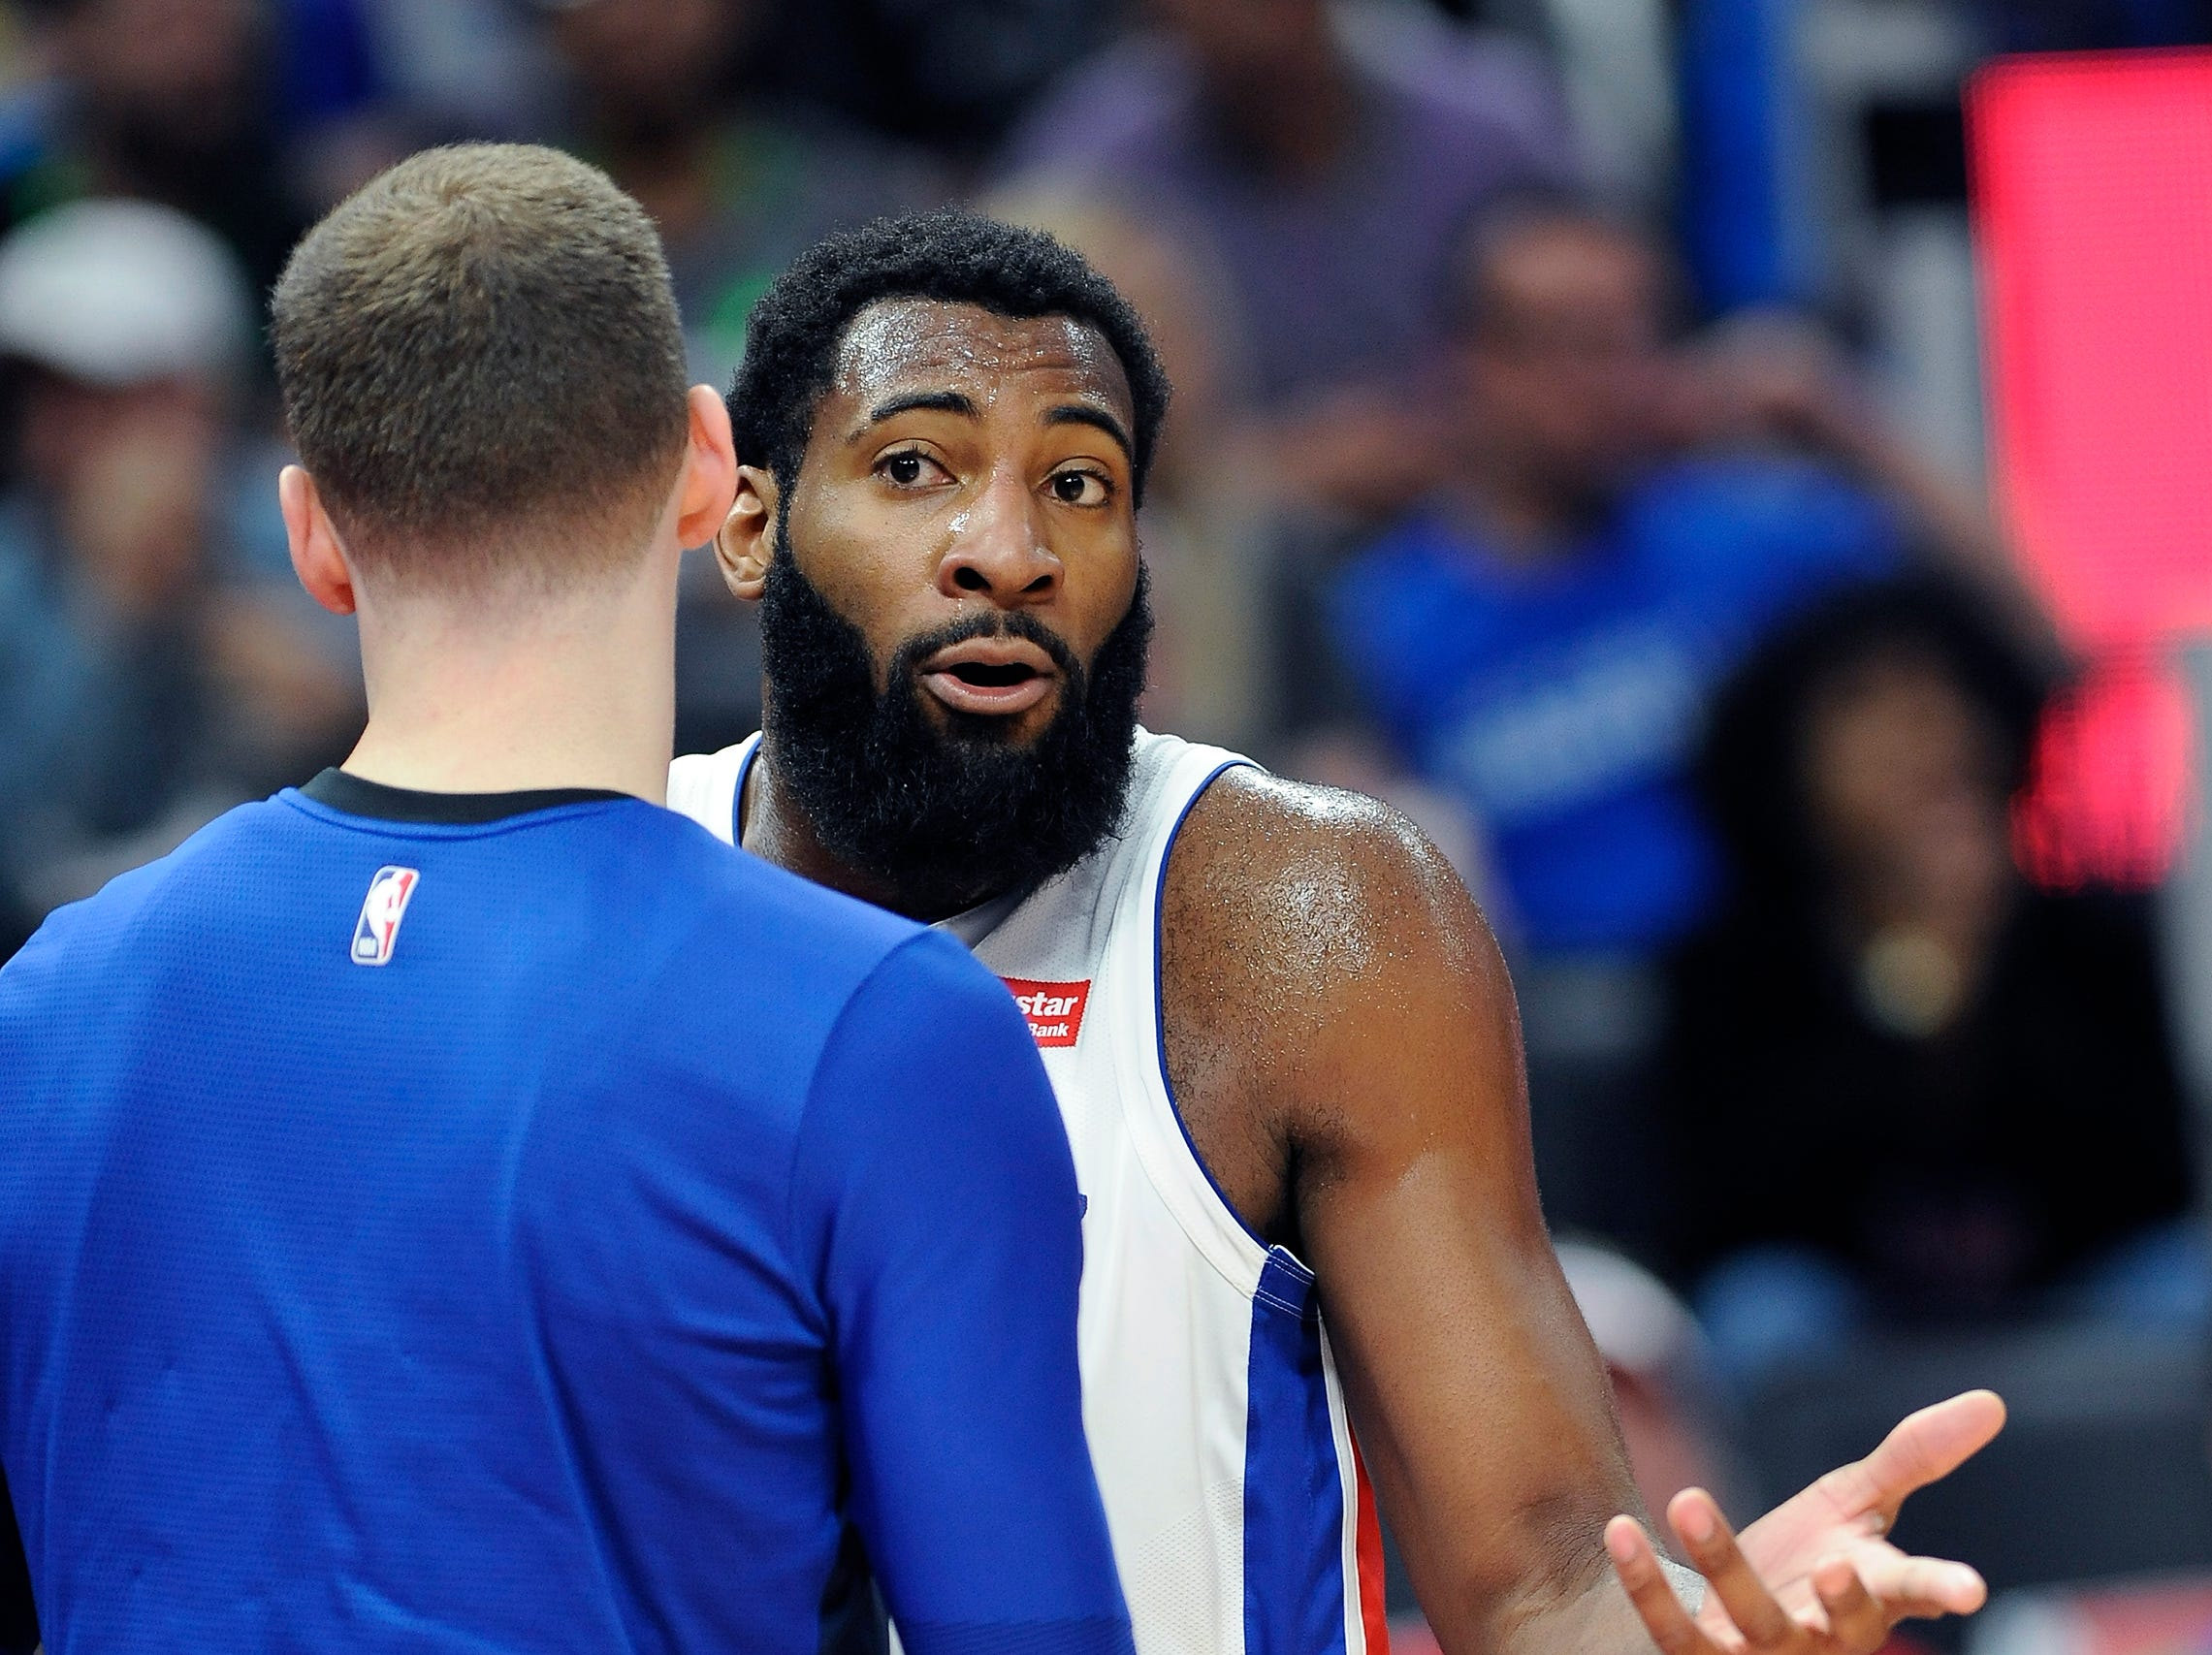 Pistons' Andre Drummond is held back by teammate Jon Leuer after a foul was called on him in the first quarter.